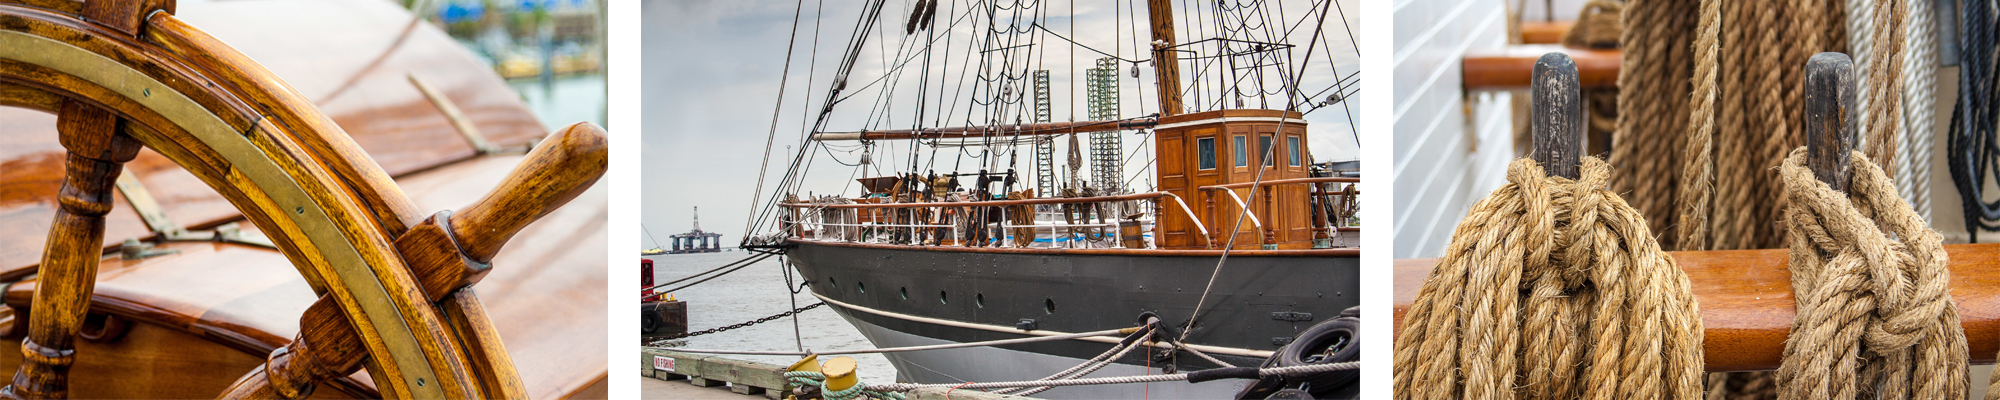 Galveston ship